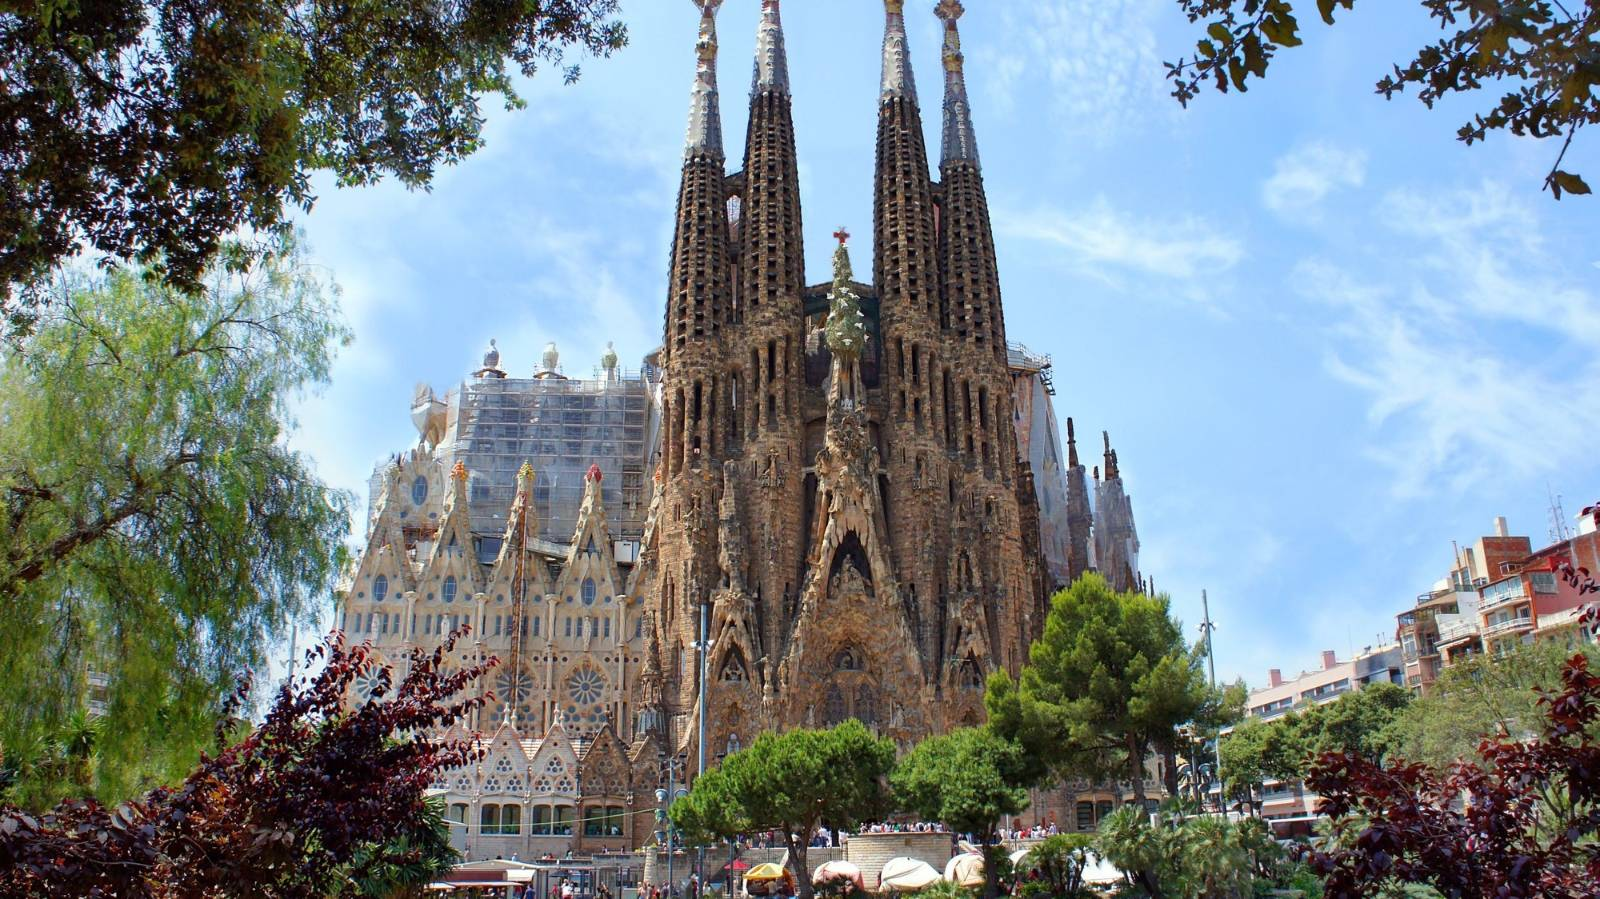 Ten tourist attractions that were slammed at first